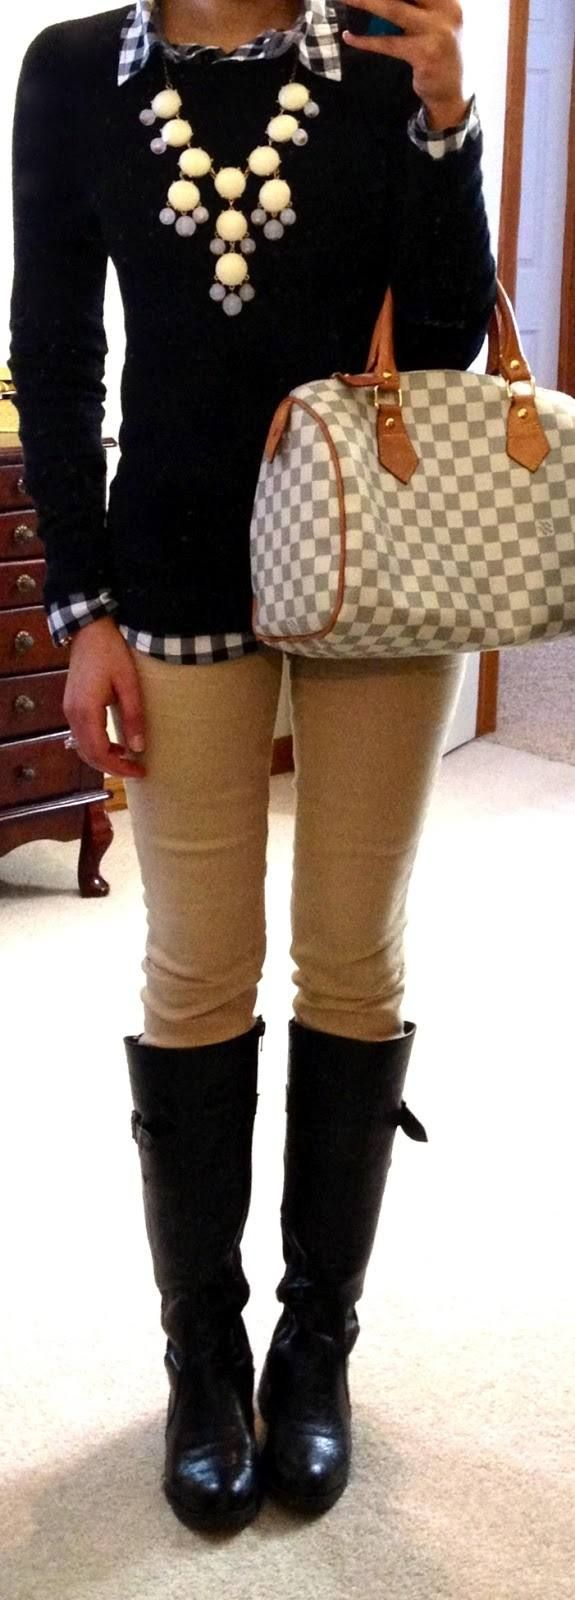 17 Best images about How to rock riding boots at work on Pinterest ...